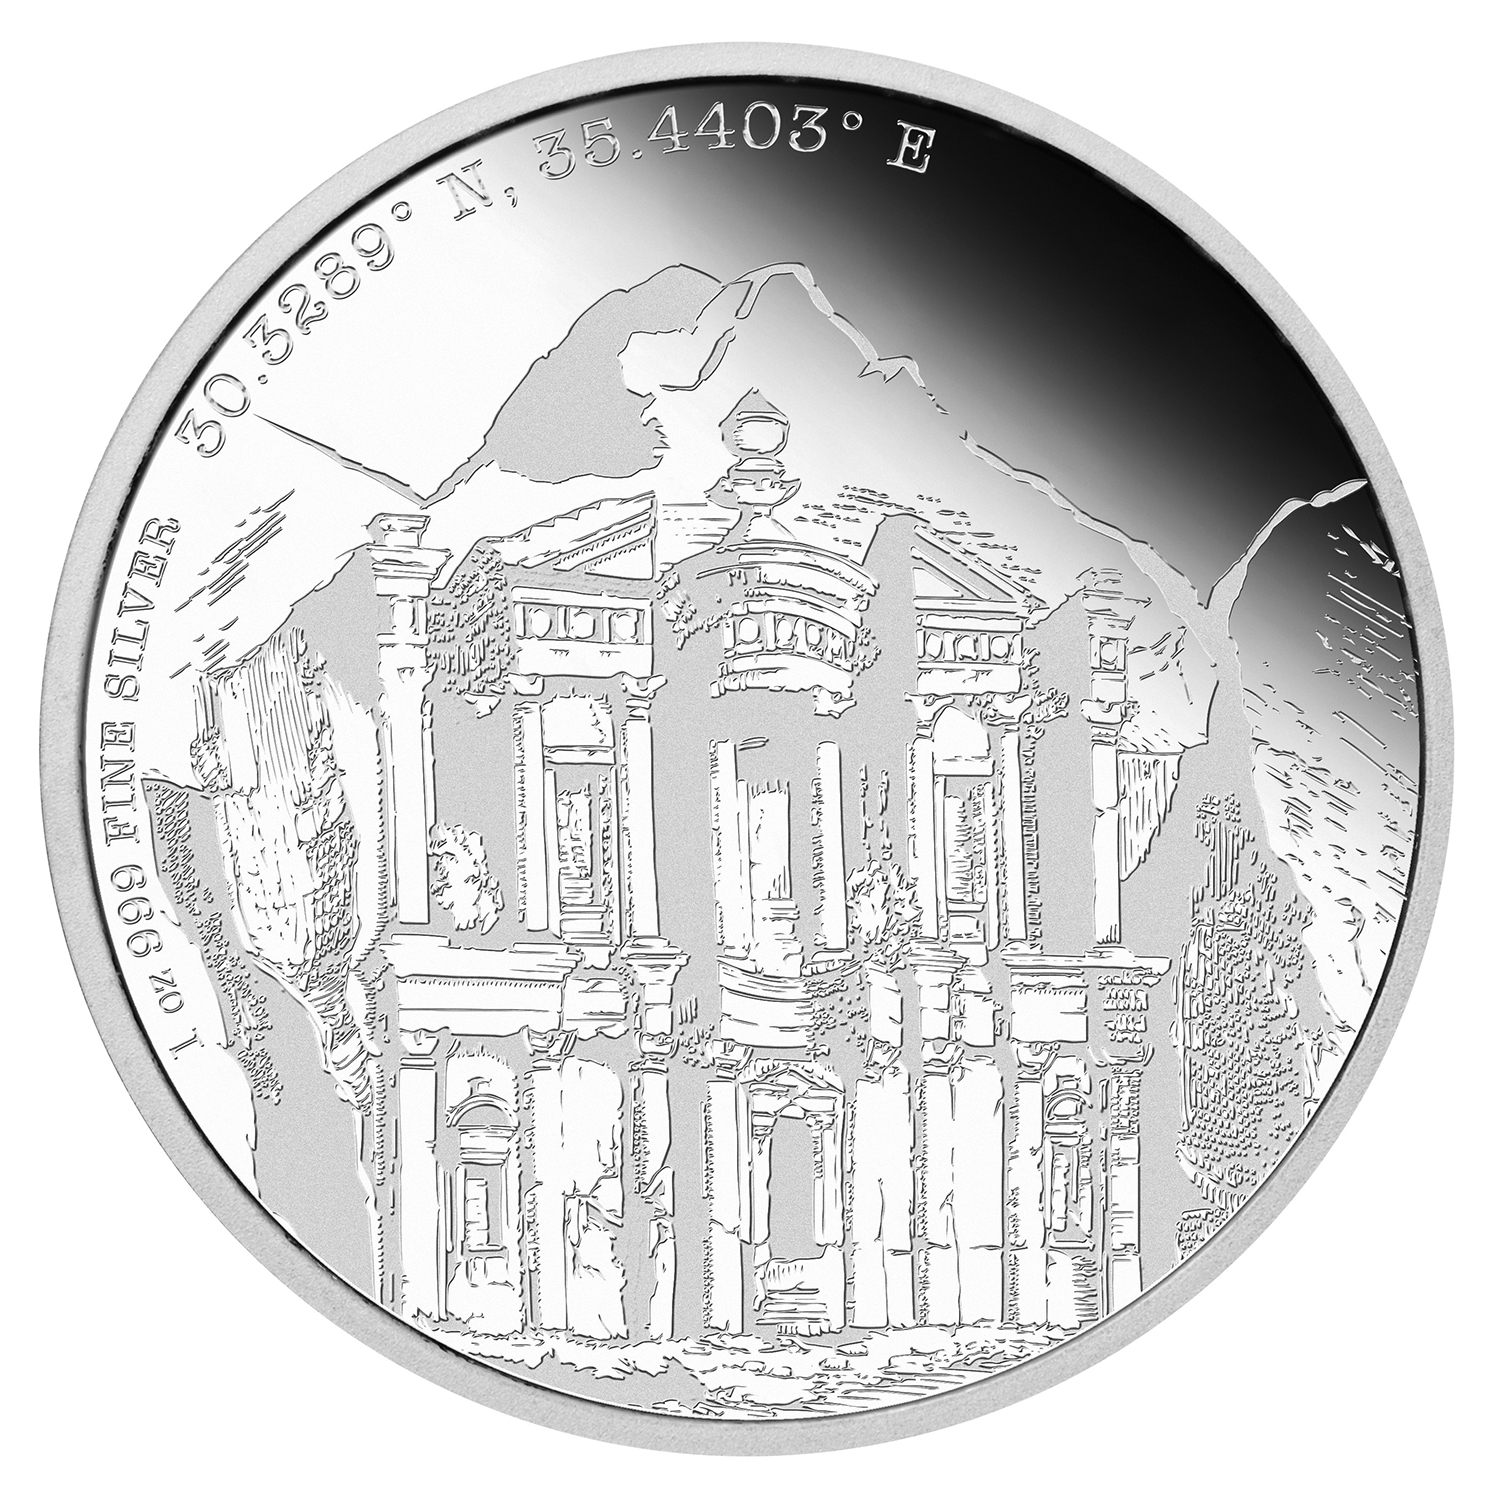 2015 Niue Proof 1 oz Silver Forgotten Cities Petra